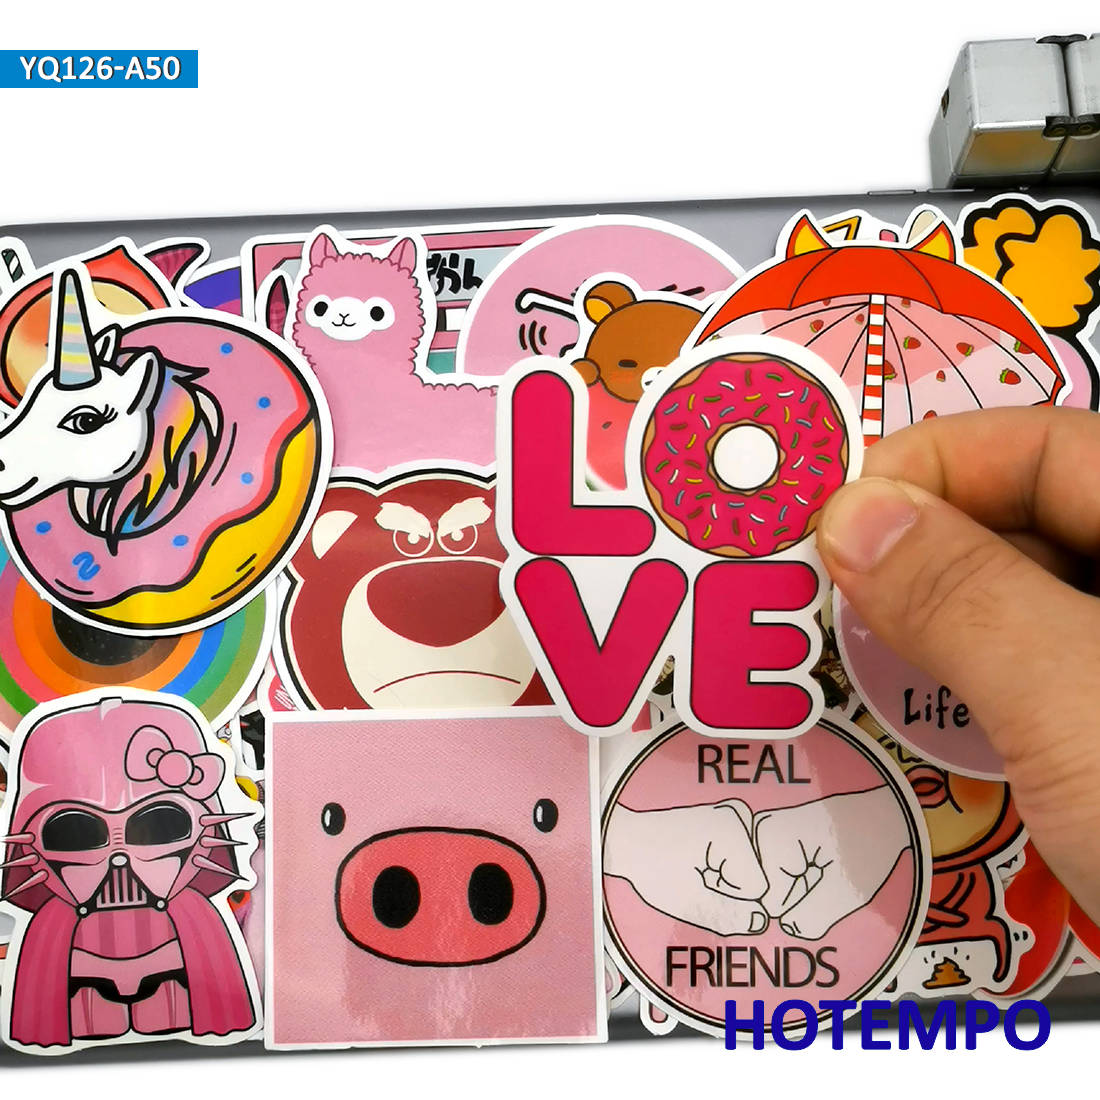 50pcs Cute Anime Mix Pink Style Stickers For Children Kids Girl Toys Gift Mobile Phone Laptop Luggage Art Shape Pattern Stickers